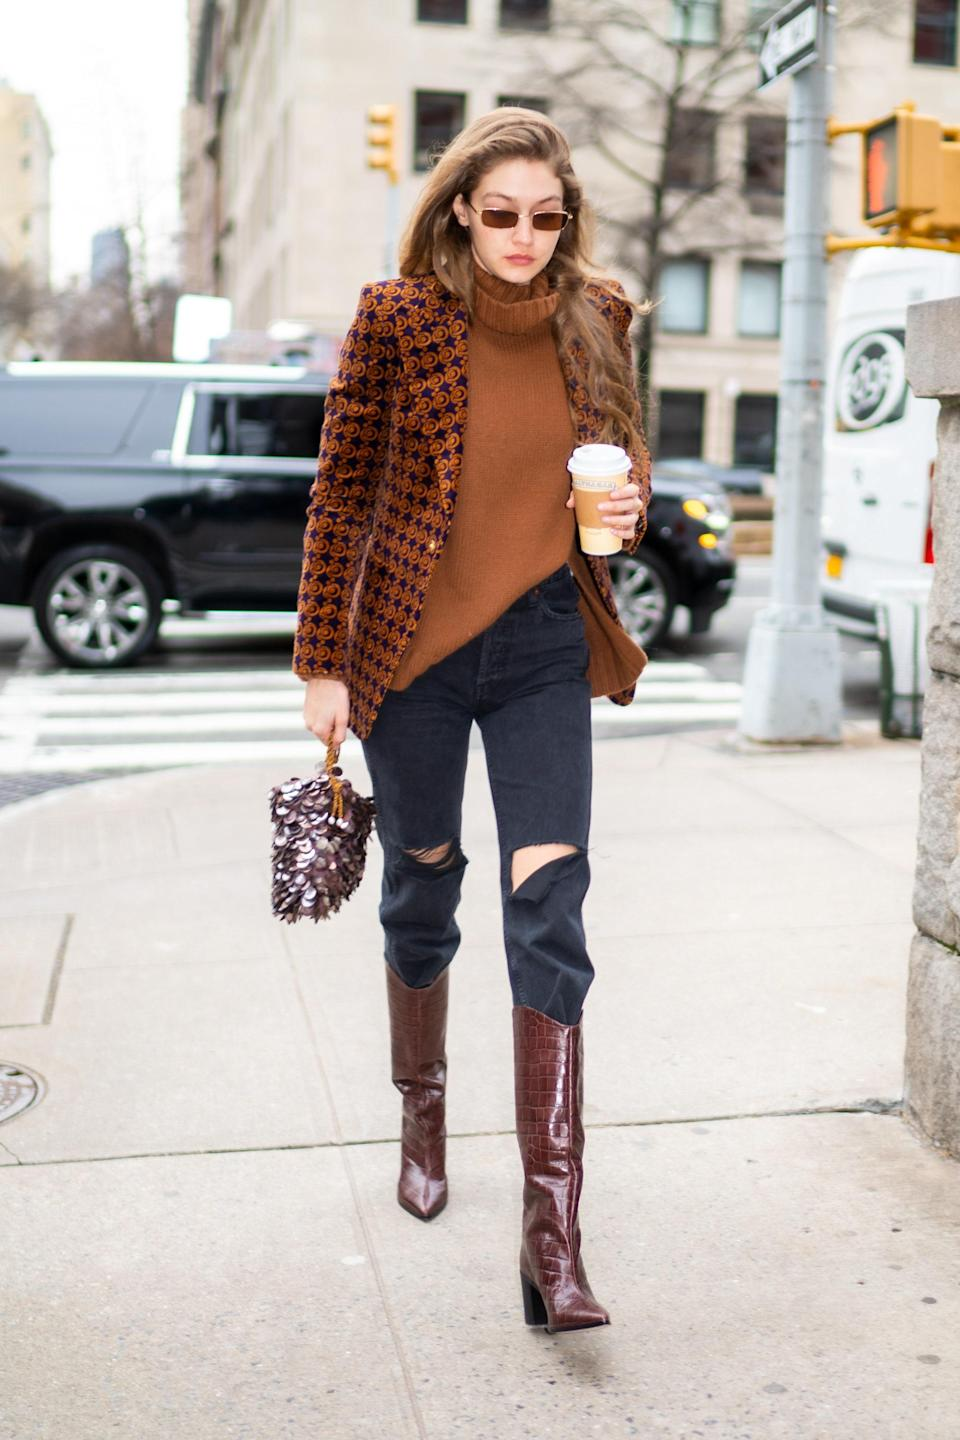 For this outing in NYC, heading to the Marc Jacobs fashion show, she opted for ripped trousers and a brown-color palette. This outfit could be from 2021 or 2012 and we're kind of here for that.